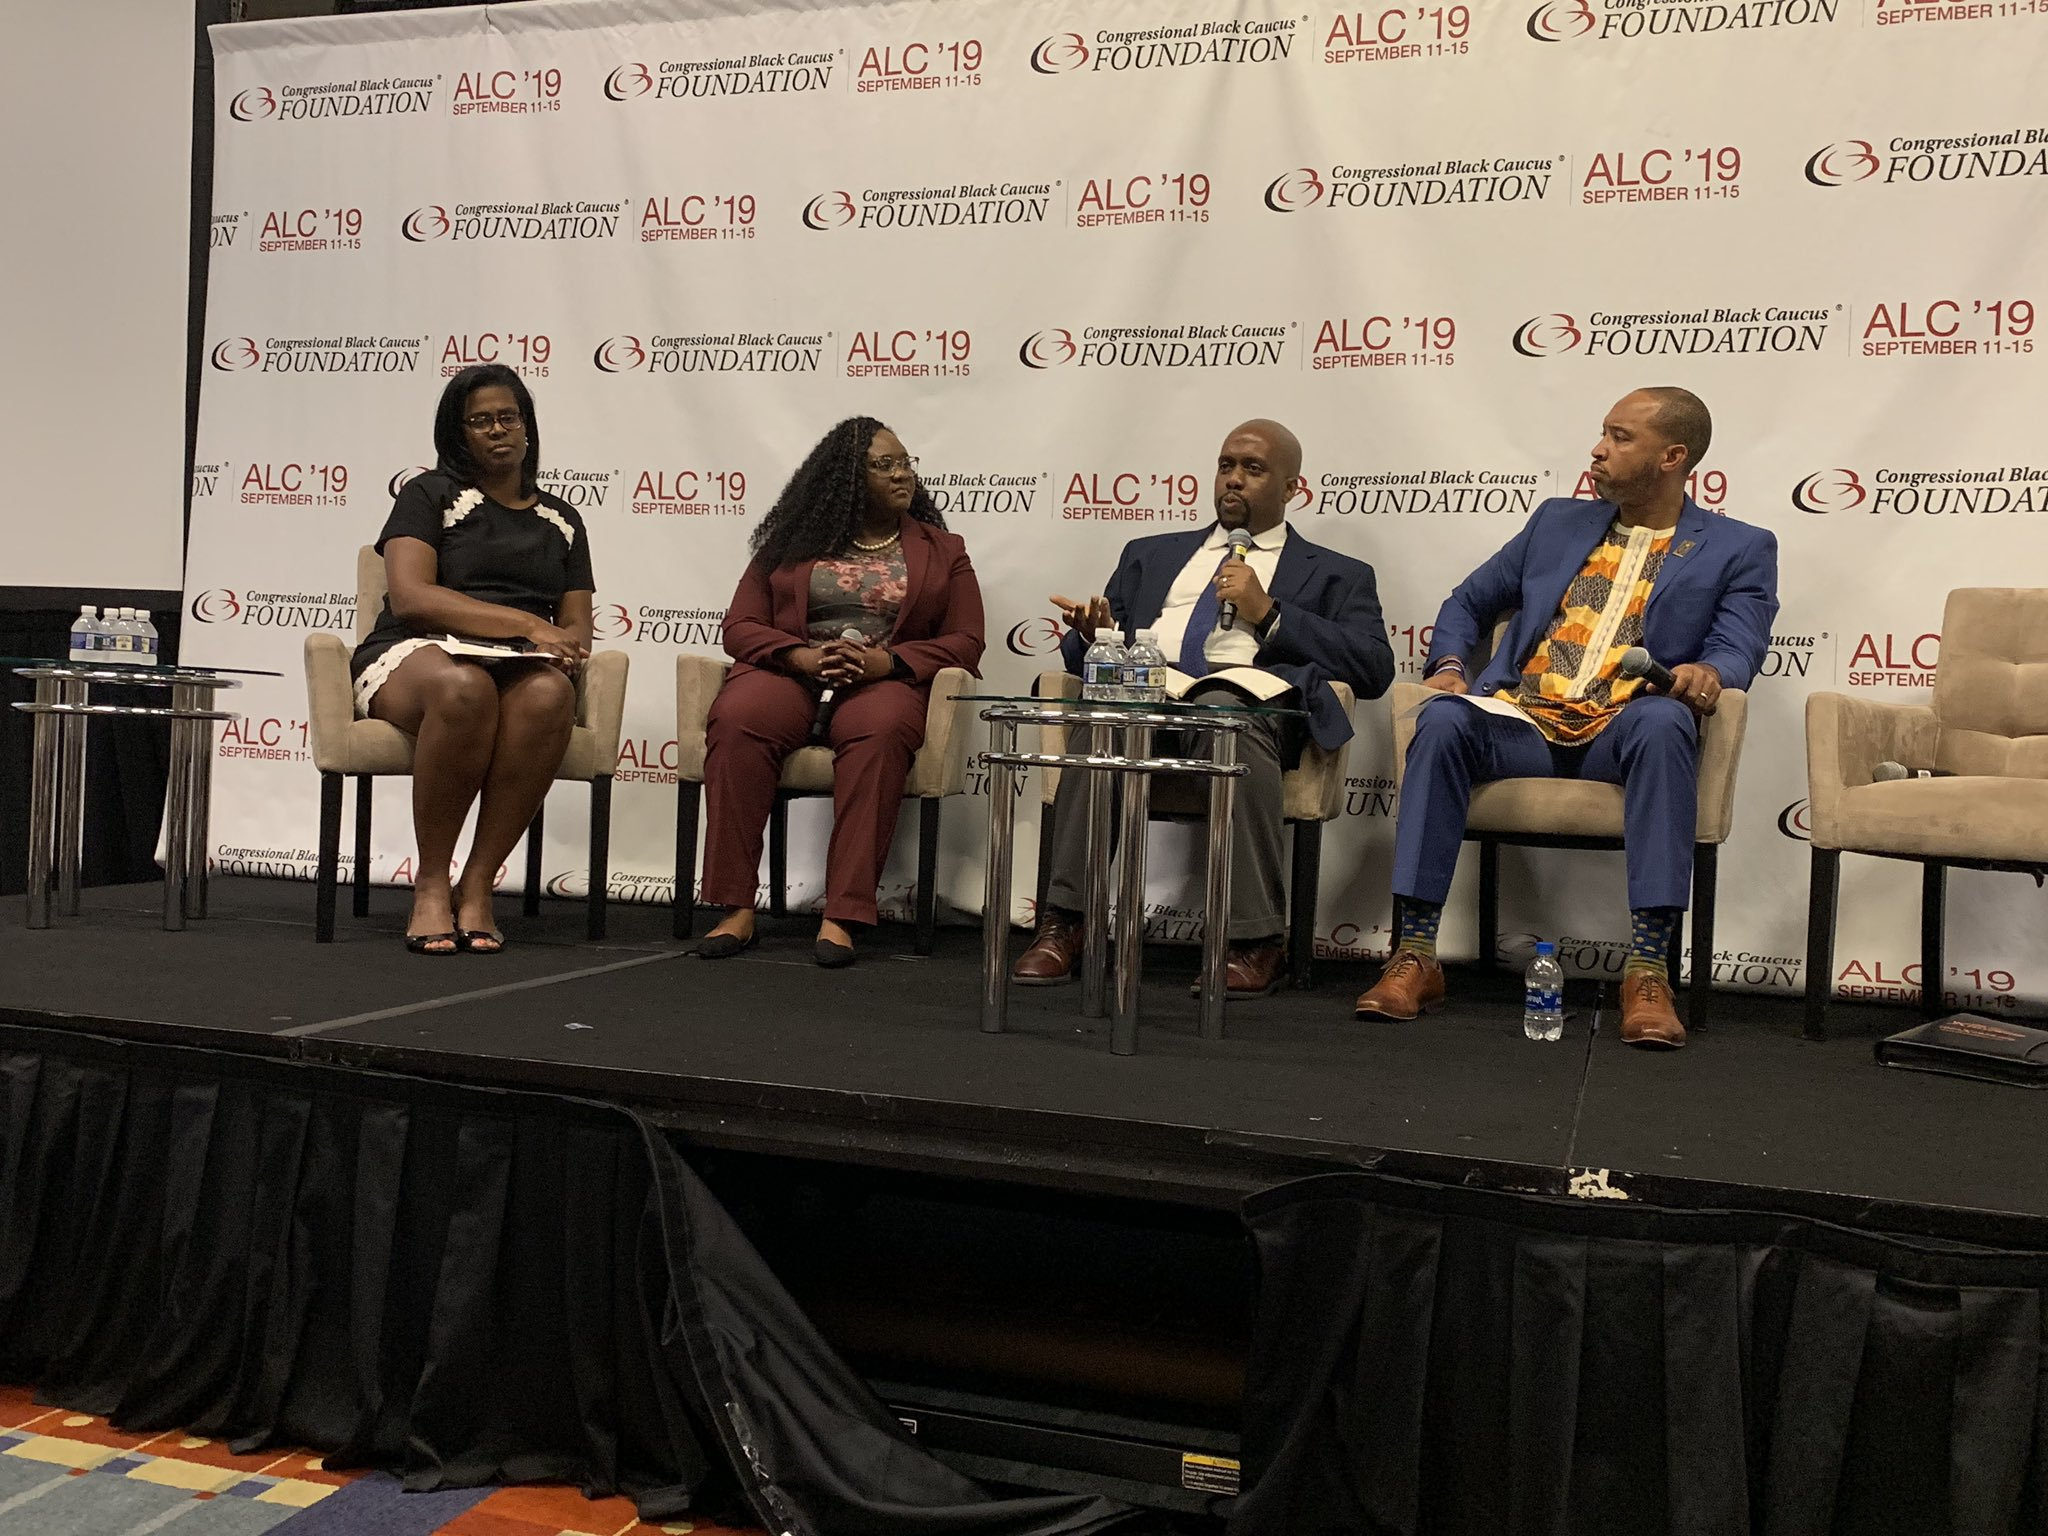 Black Teachers as Reparations: My Remarks at the Congressional Black Caucus